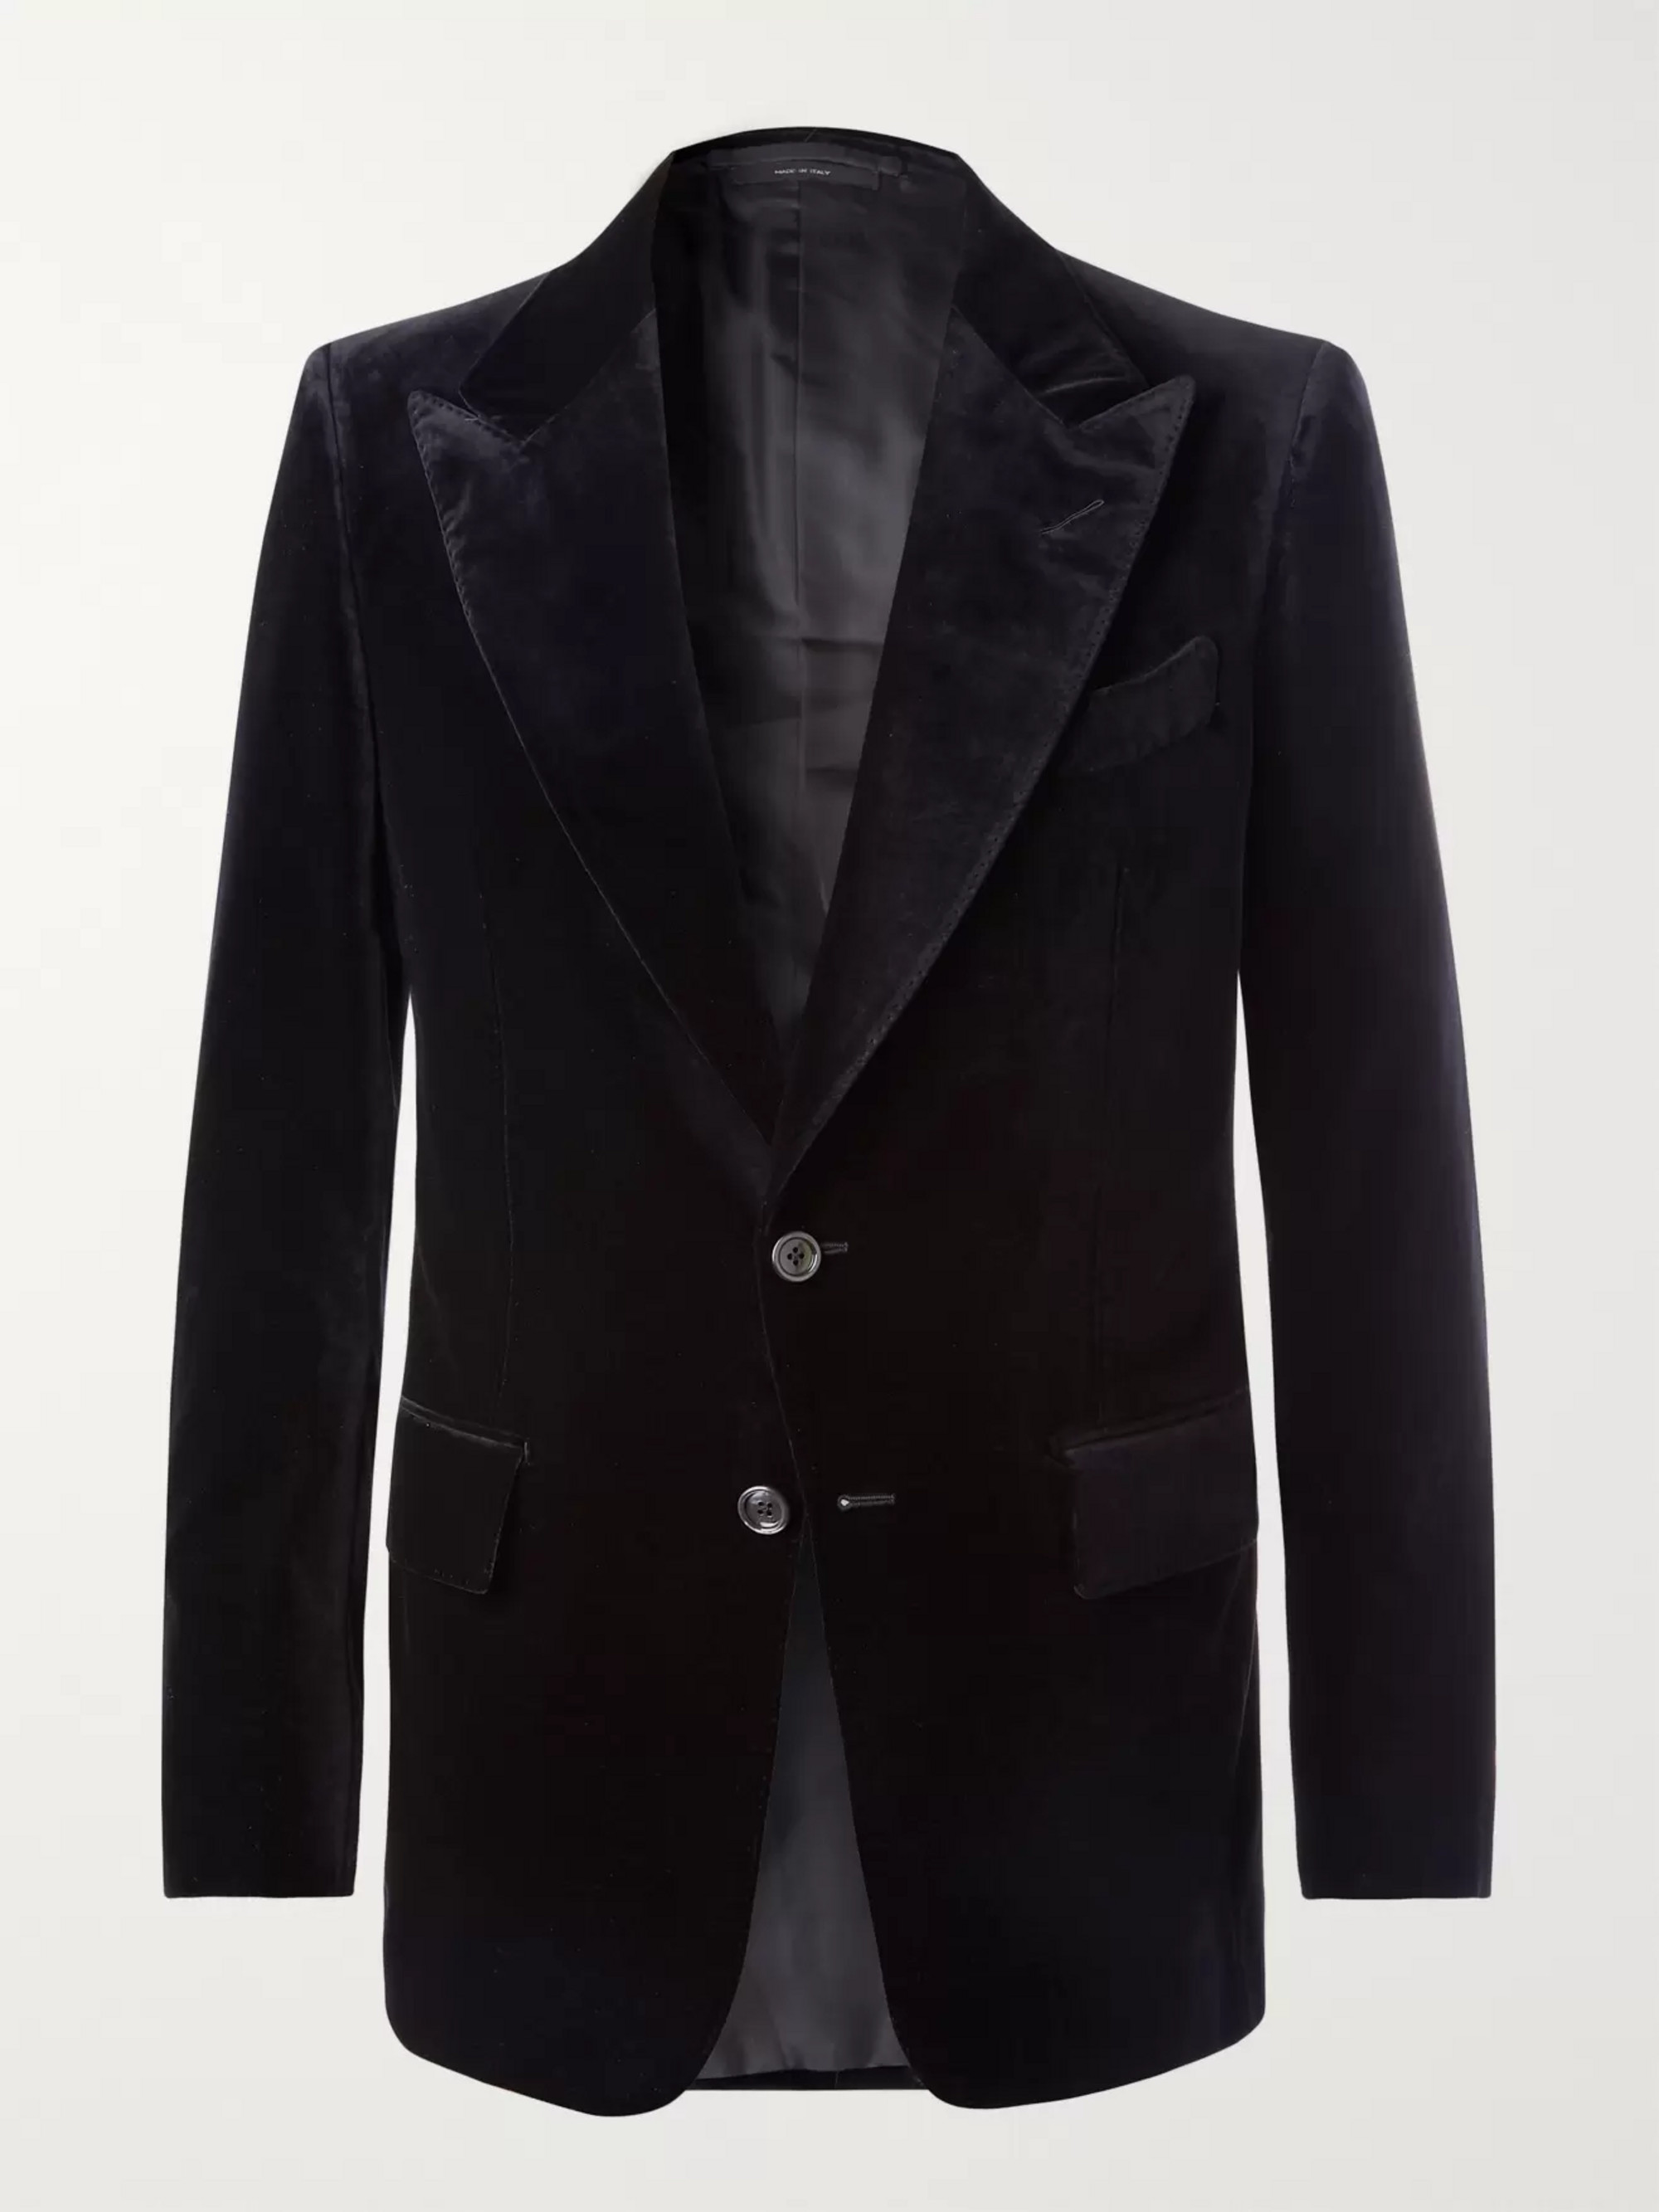 TOM FORD Midnight-Blue Shelton Slim-Fit Velvet Suit Jacket